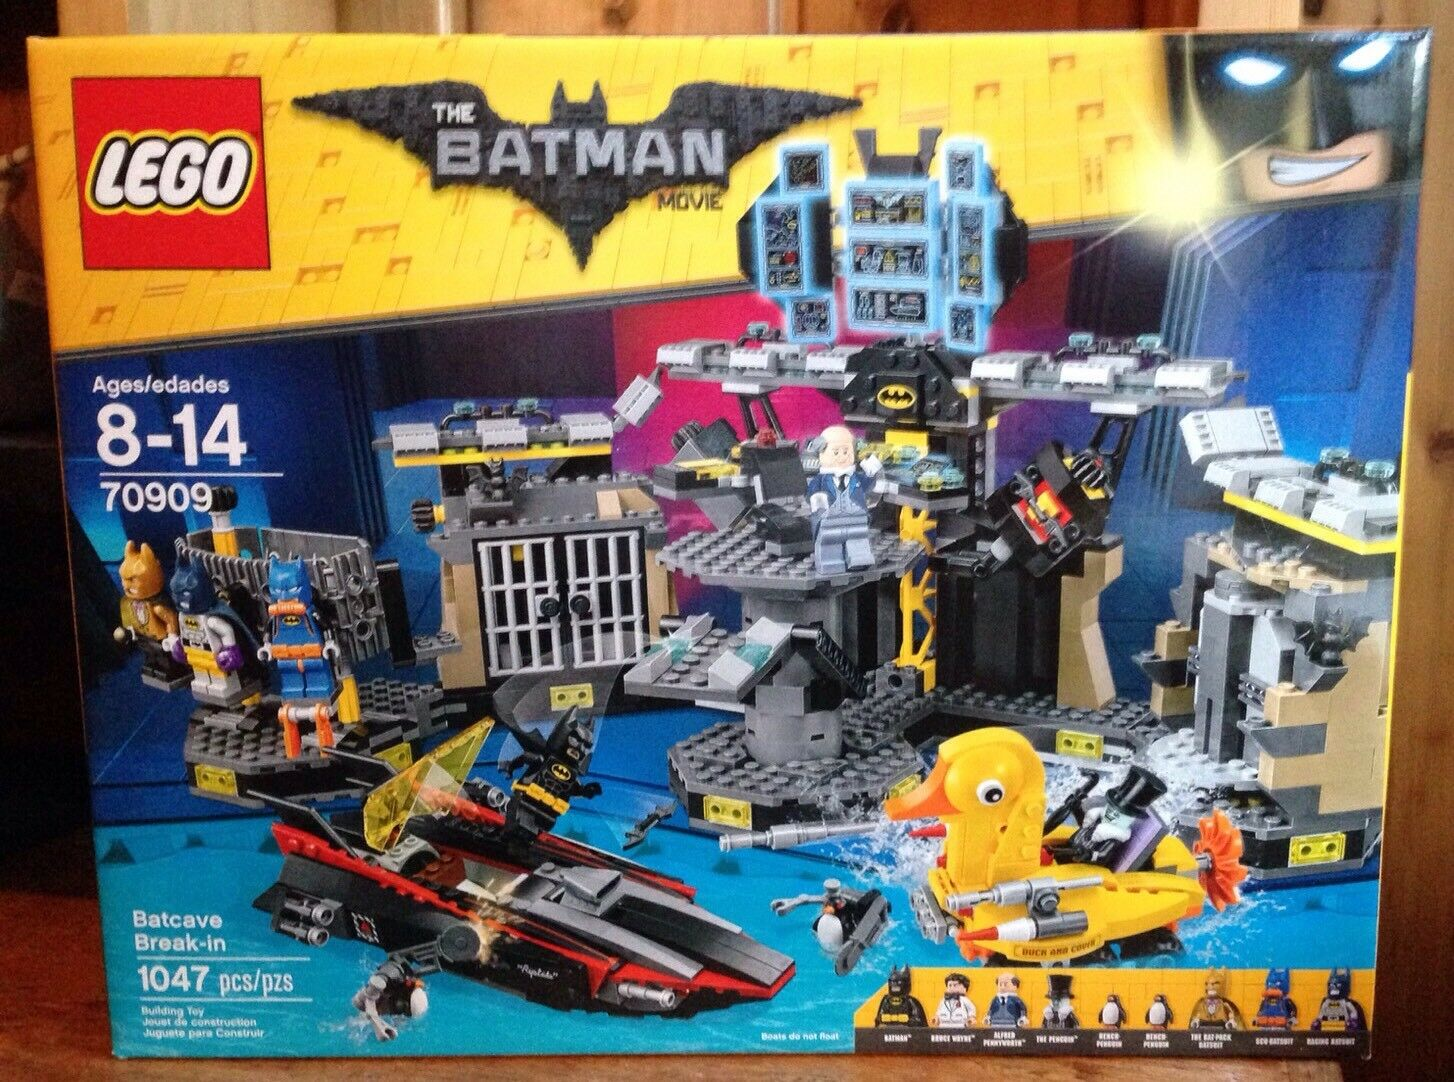 The LEGO Batman Movie Batcave Break-in 70909 MISB